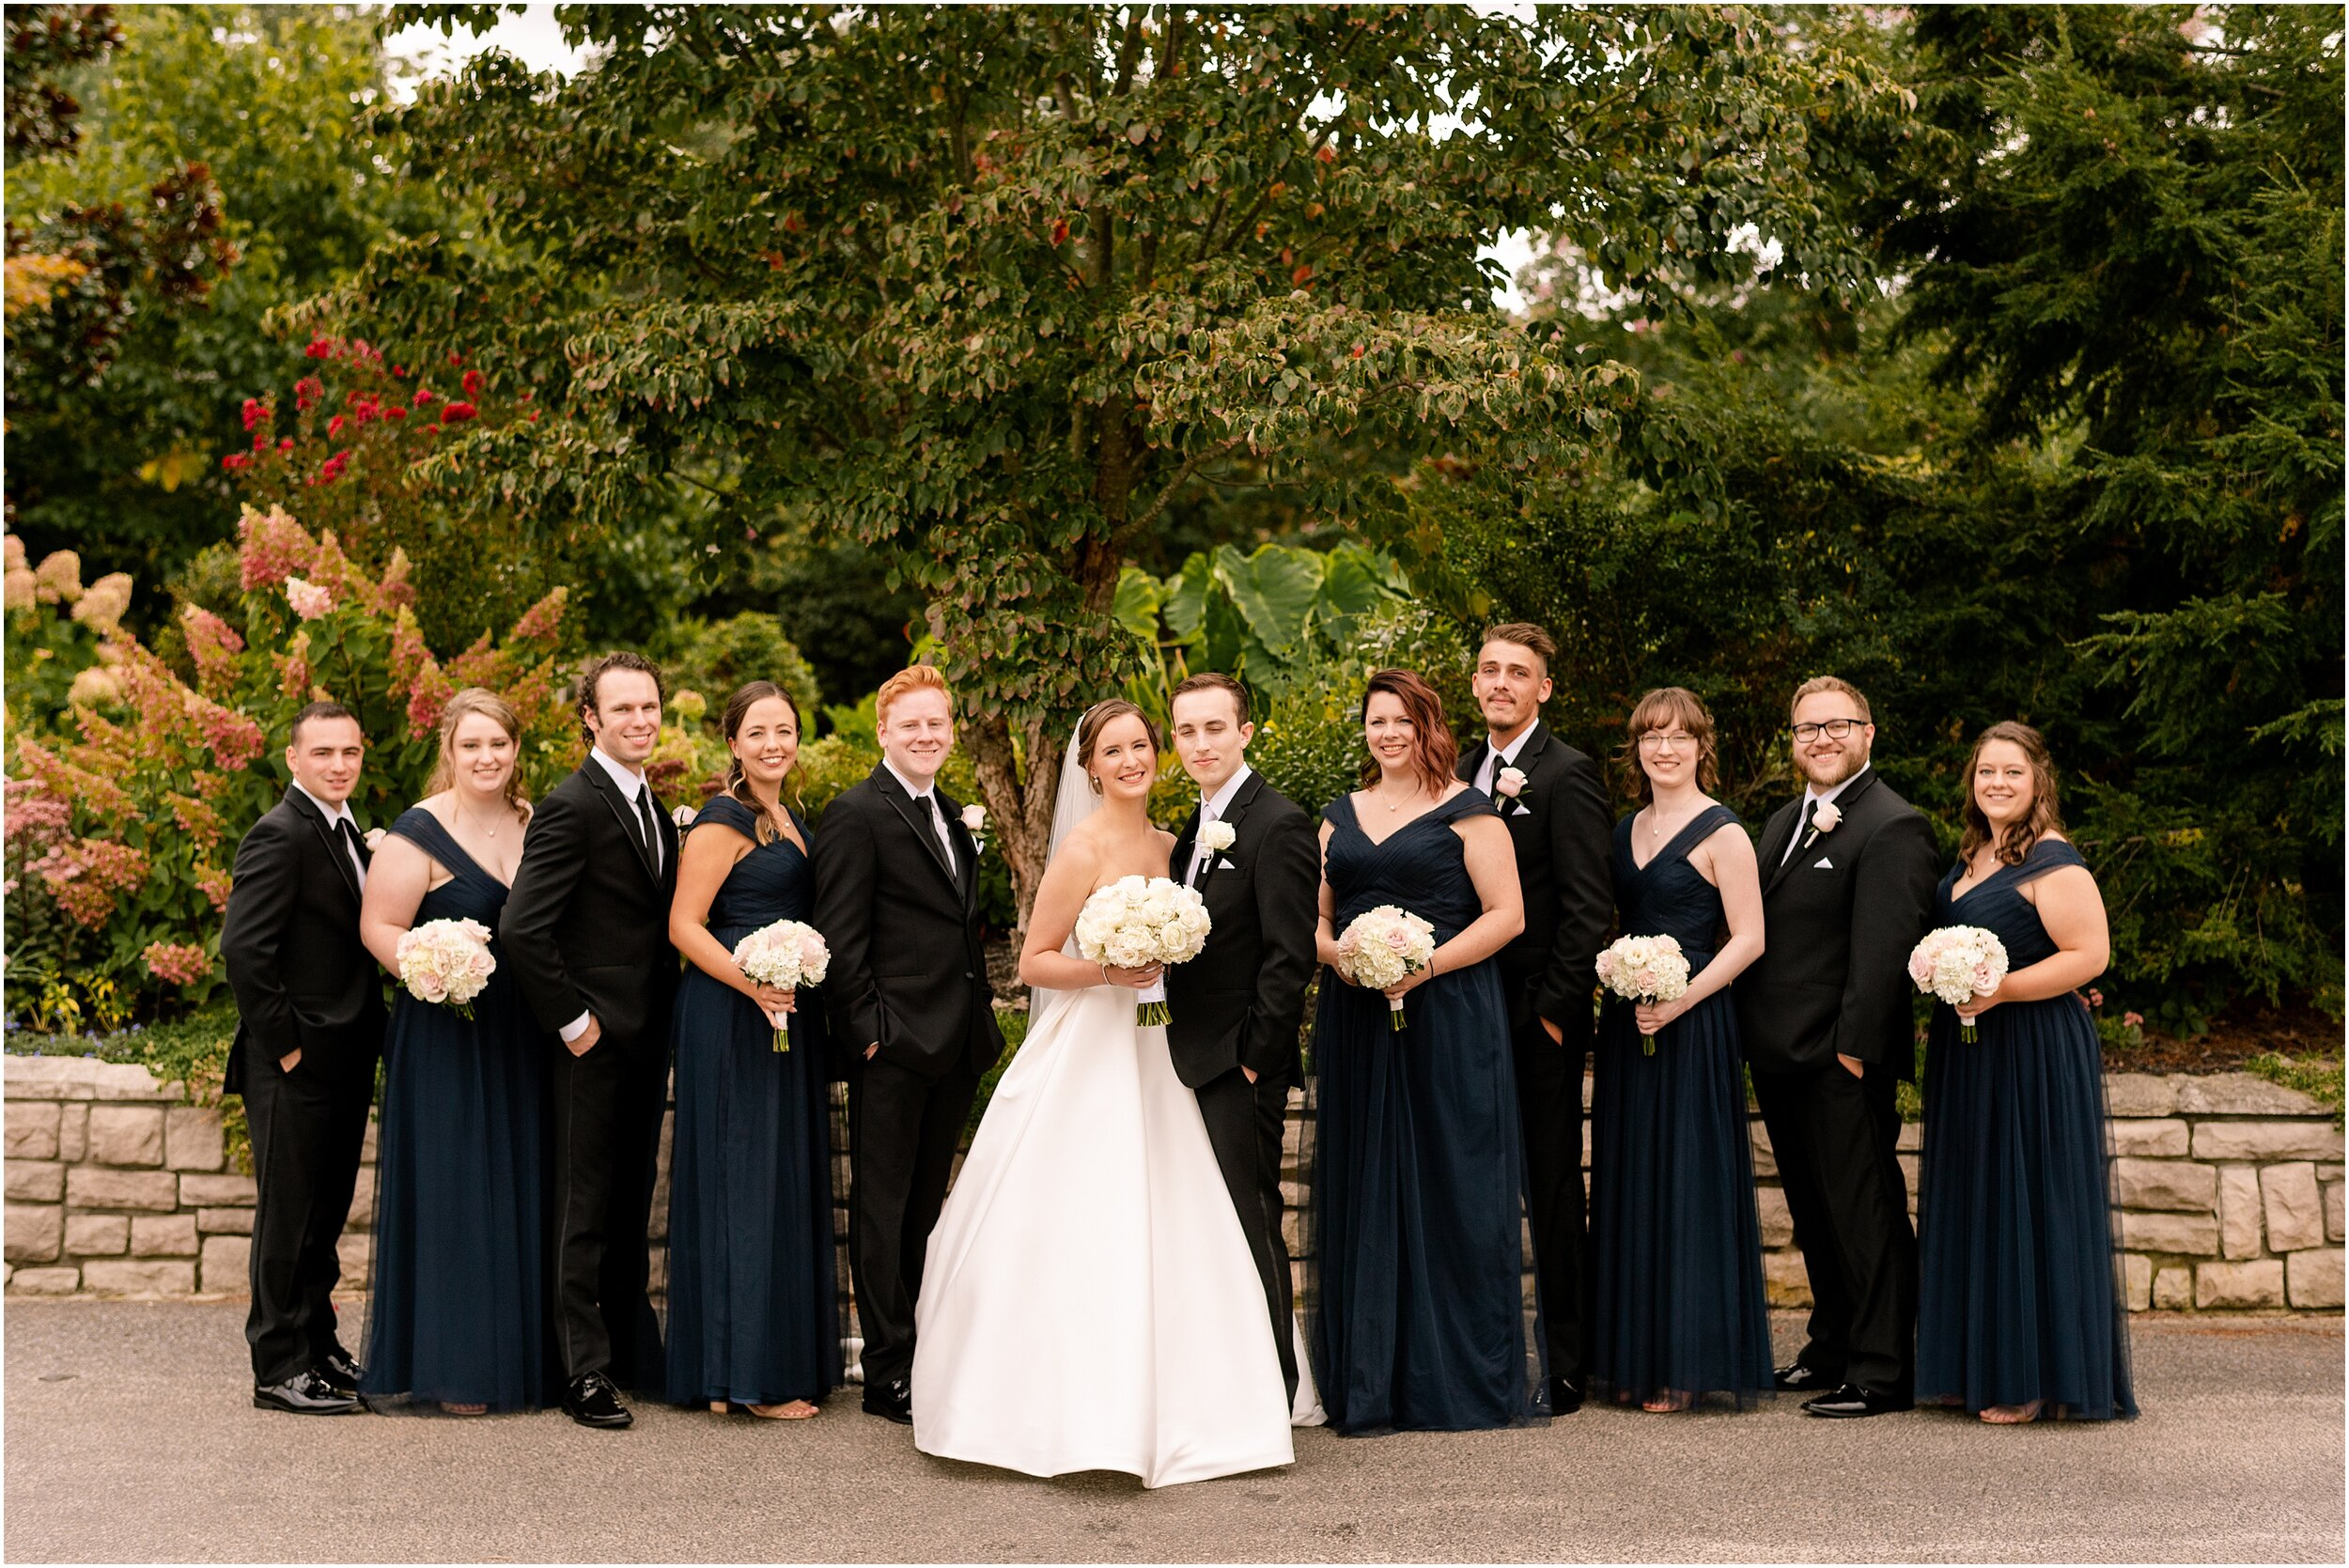 hannah leigh photography Pond View Farm Wedding White Hall MD_3760.jpg